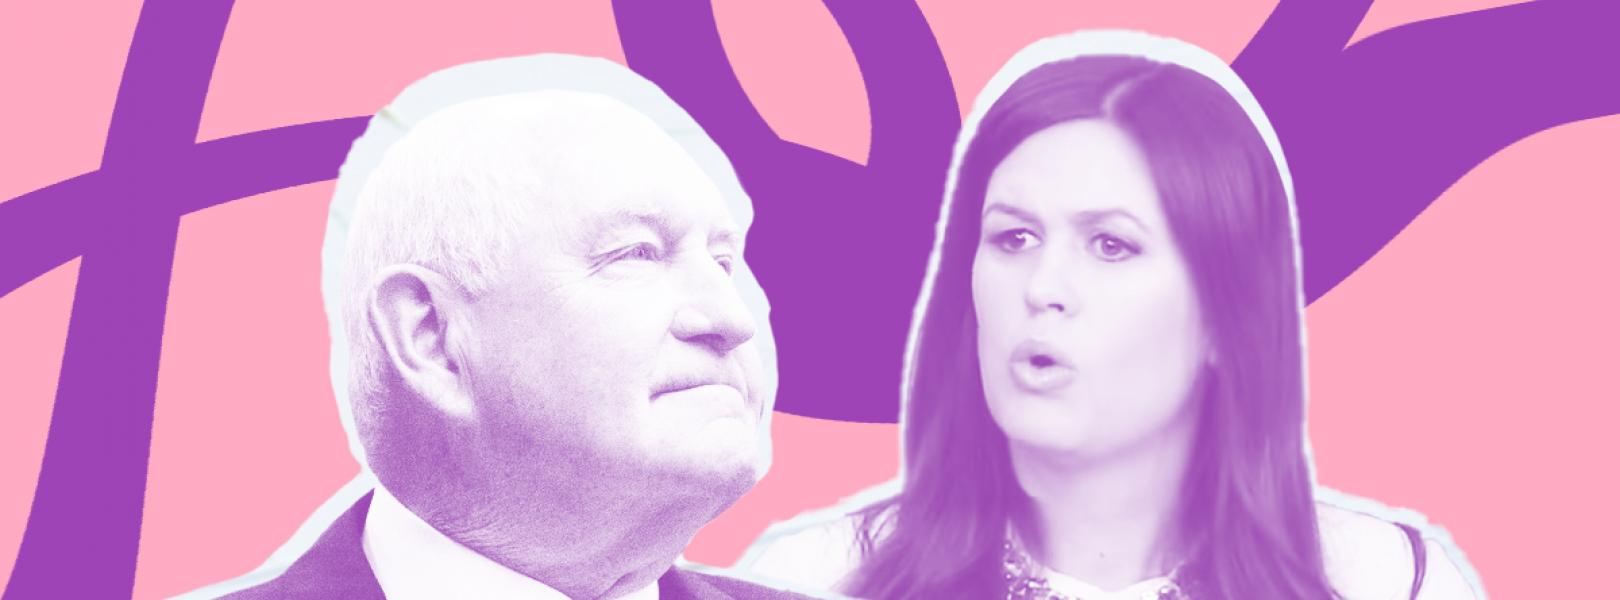 Sarah Sanders and Sonny Perdue